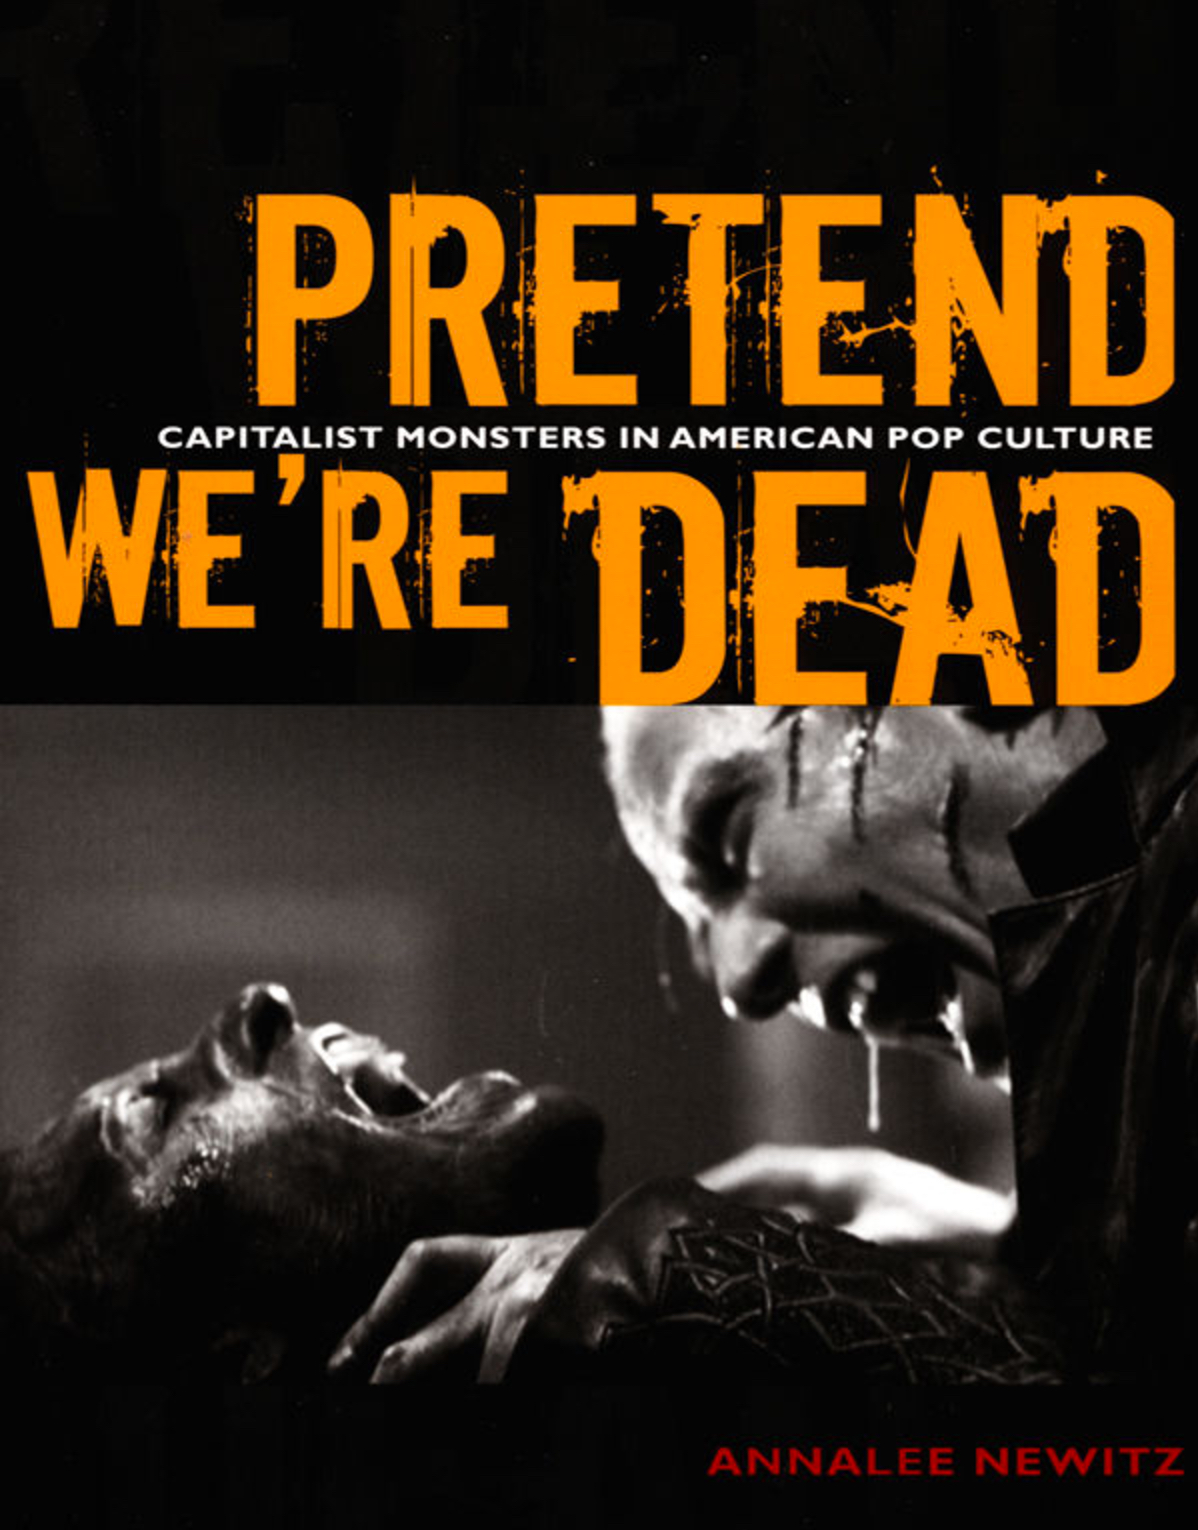 Pretend we're dead - My Ph.D. thesis was about representations of monsters and psychopaths in 20th century American pop culture. I focused on a few character tropes, including the mad scientist, the zombie,and the cyborg, and traced how stories about them changed over a hundred-year arc. In 2006, Duke University Press published a much-improved version of my dissertation in the form of a book.